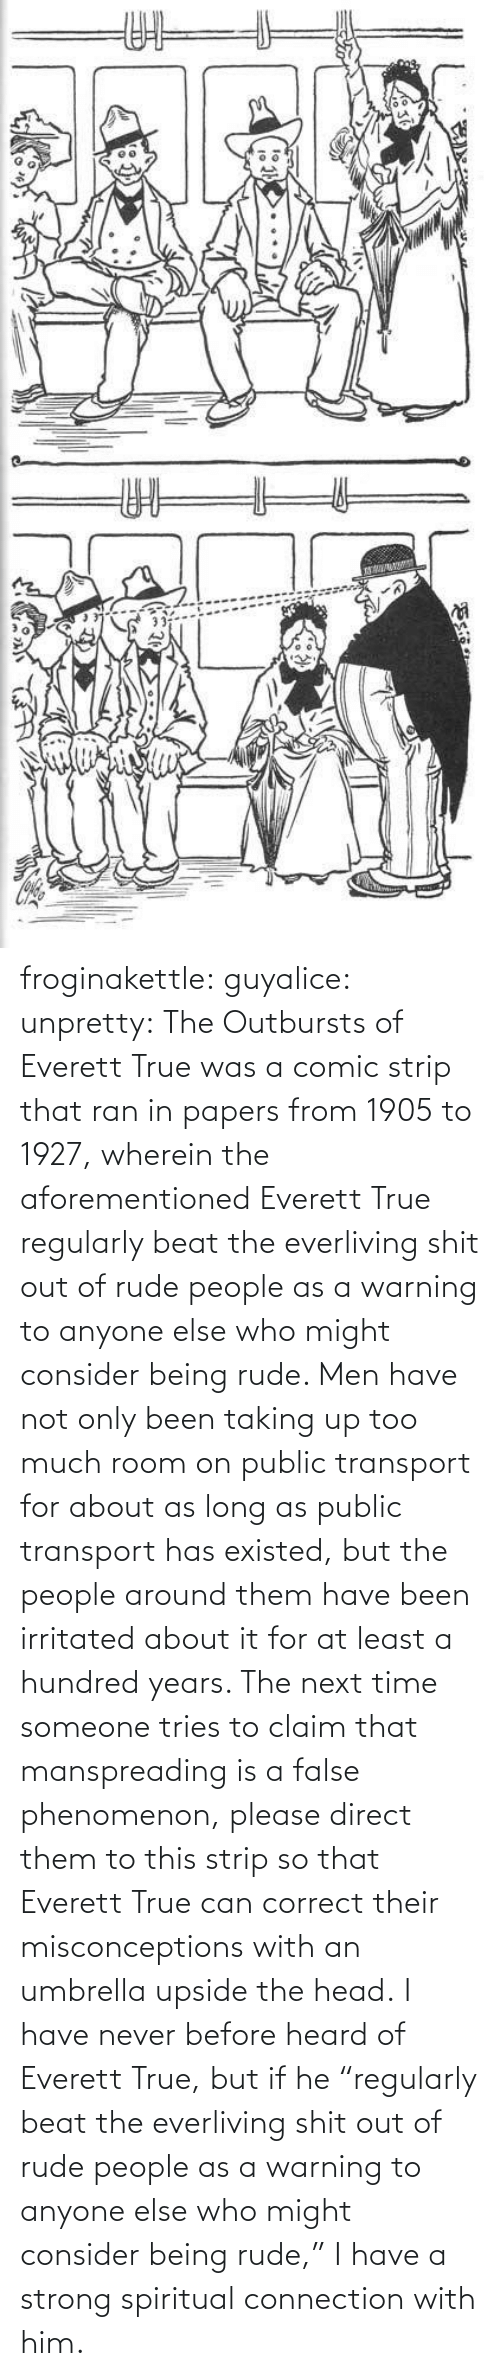 "wikipedia: ఇ  క froginakettle:  guyalice:  unpretty:  The Outbursts of Everett True was a comic strip that ran in papers from 1905 to 1927, wherein the aforementioned Everett True regularly beat the everliving shit out of rude people as a warning to anyone else who might consider being rude. Men have not only been taking up too much room on public transport for about as long as public transport has existed, but the people around them have been irritated about it for at least a hundred years. The next time someone tries to claim that manspreading is a false phenomenon, please direct them to this strip so that Everett True can correct their misconceptions with an umbrella upside the head.  I have never before heard of Everett True, but if he ""regularly beat the everliving shit out of rude people as a warning to anyone else who might consider being rude,"" I have a strong spiritual connection with him."